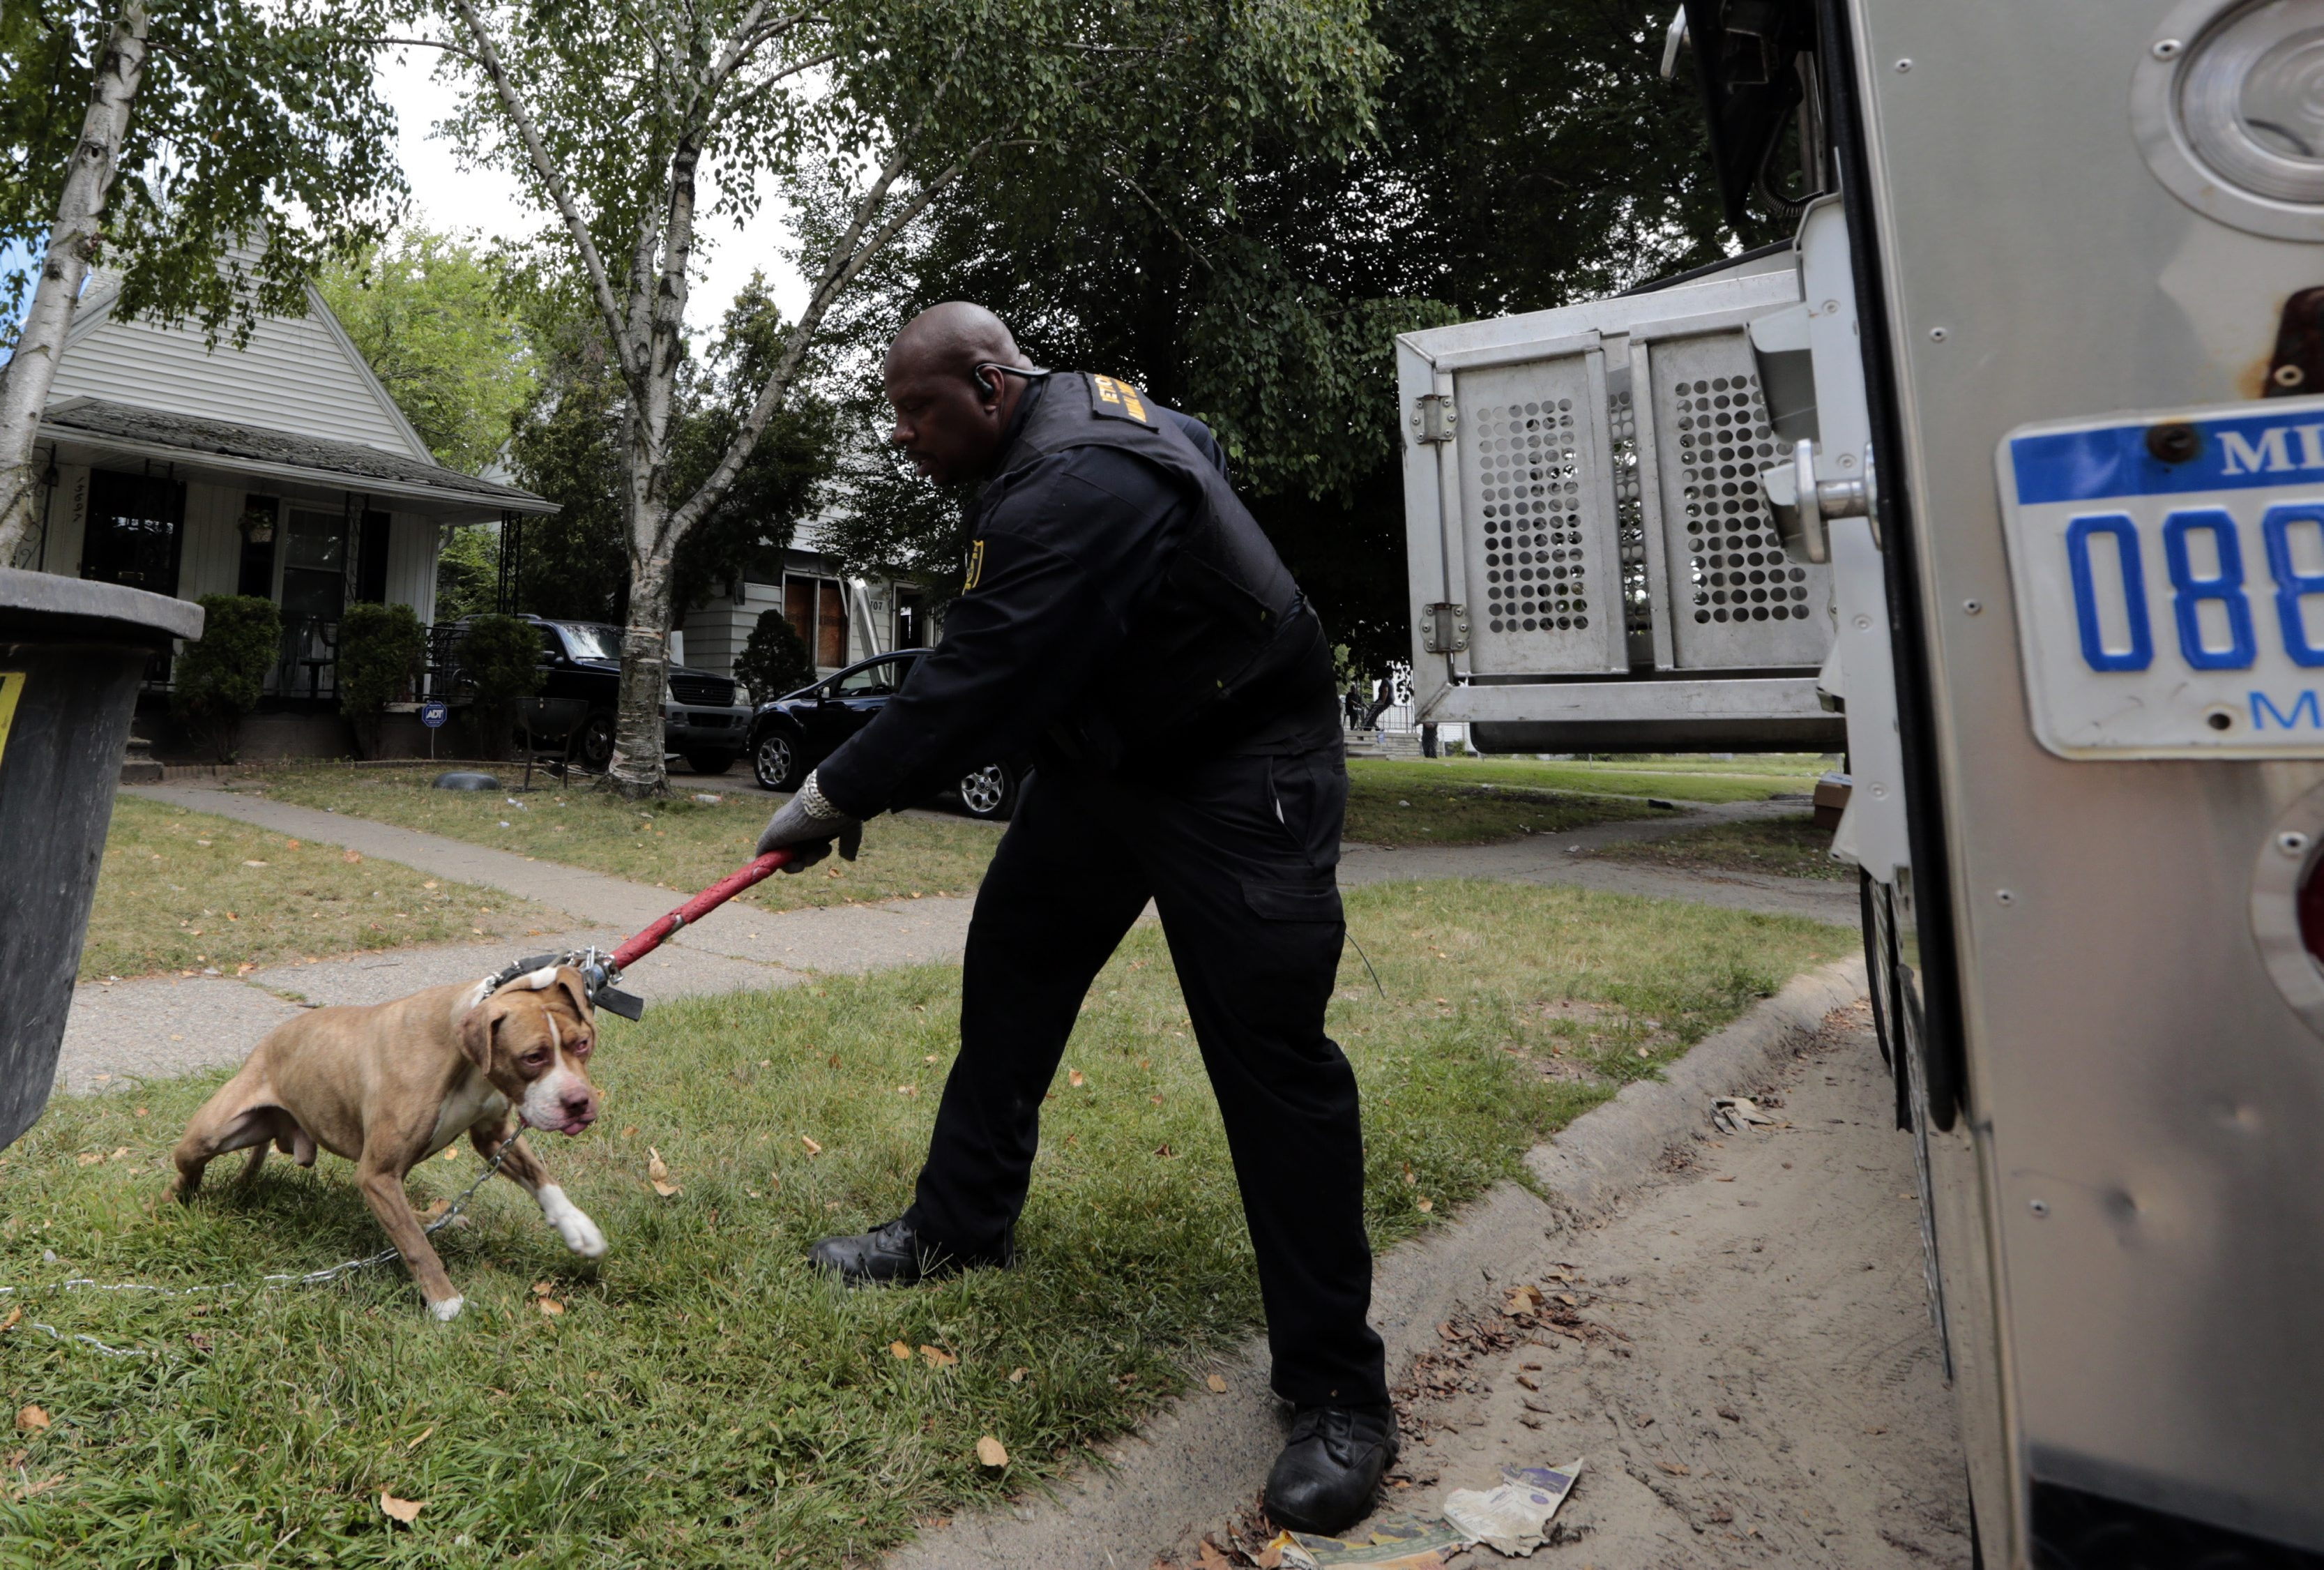 Malachi Jackson, an animal-control officer in Detroit, secures a pit bull terrier en route to quarantine after biting a person. Roaming packs of dogs are posing daunting problems.